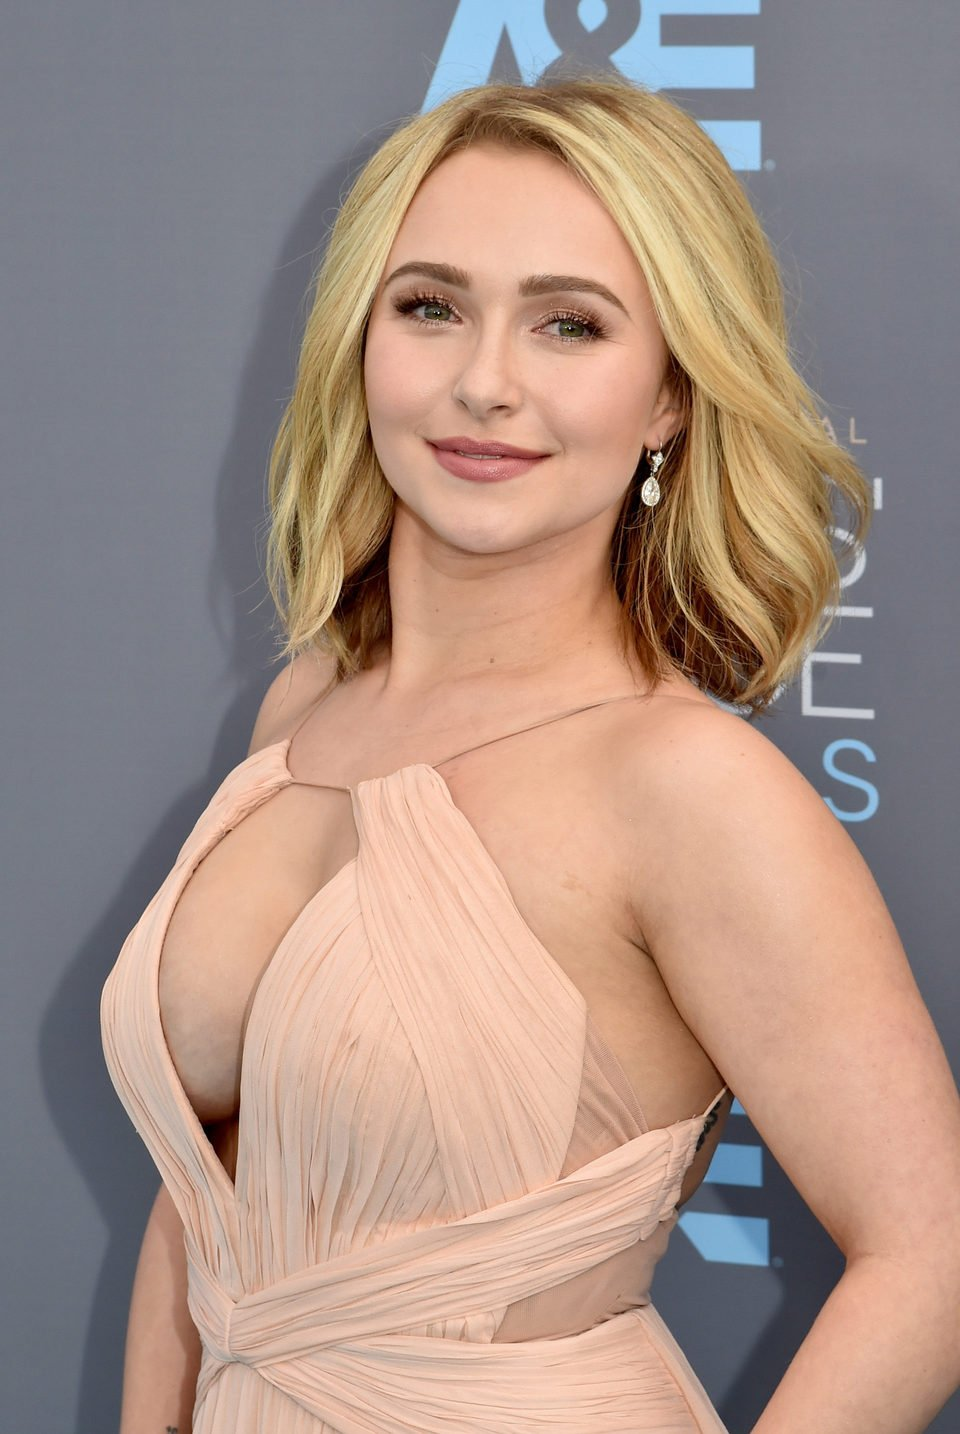 Hayden Panettiere at 2016 Critics Choice Awards red carpet